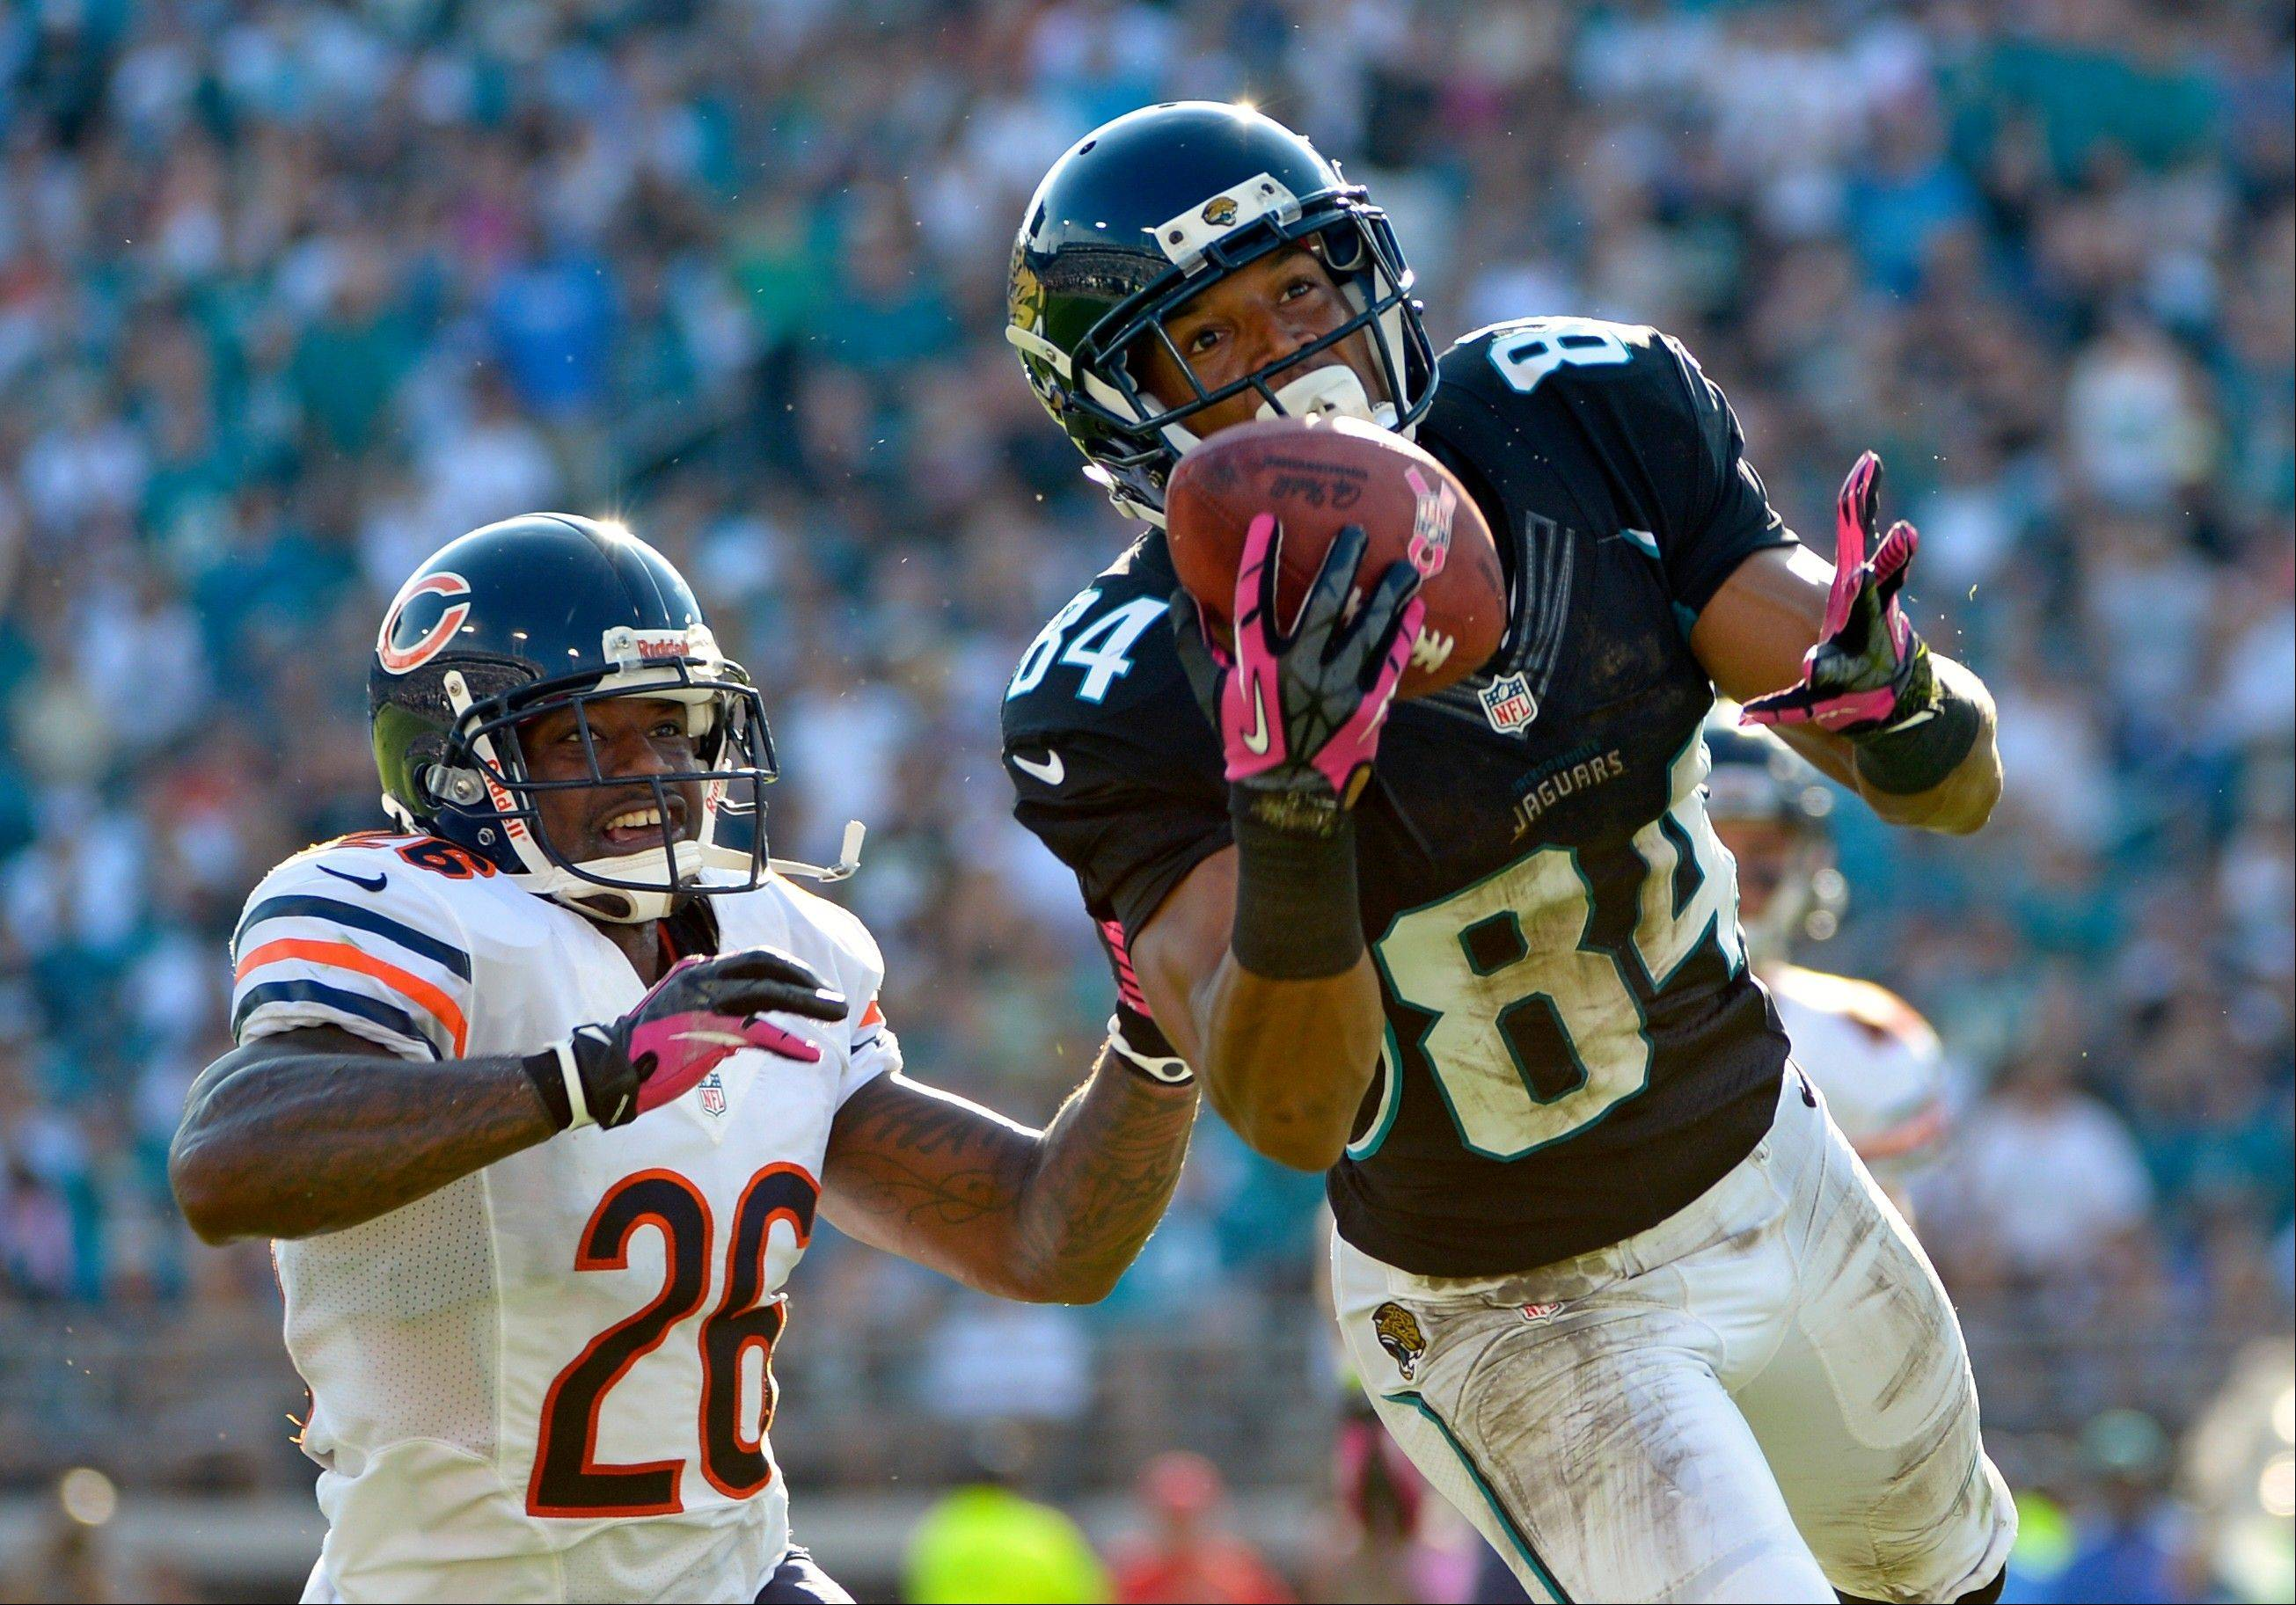 Jacksonville Jaguars wide receiver Cecil Shorts catches a pass for a 34-yard gain in front of Chicago Bears cornerback Tim Jennings during the first half, Sunday, in Jacksonville, Fla.